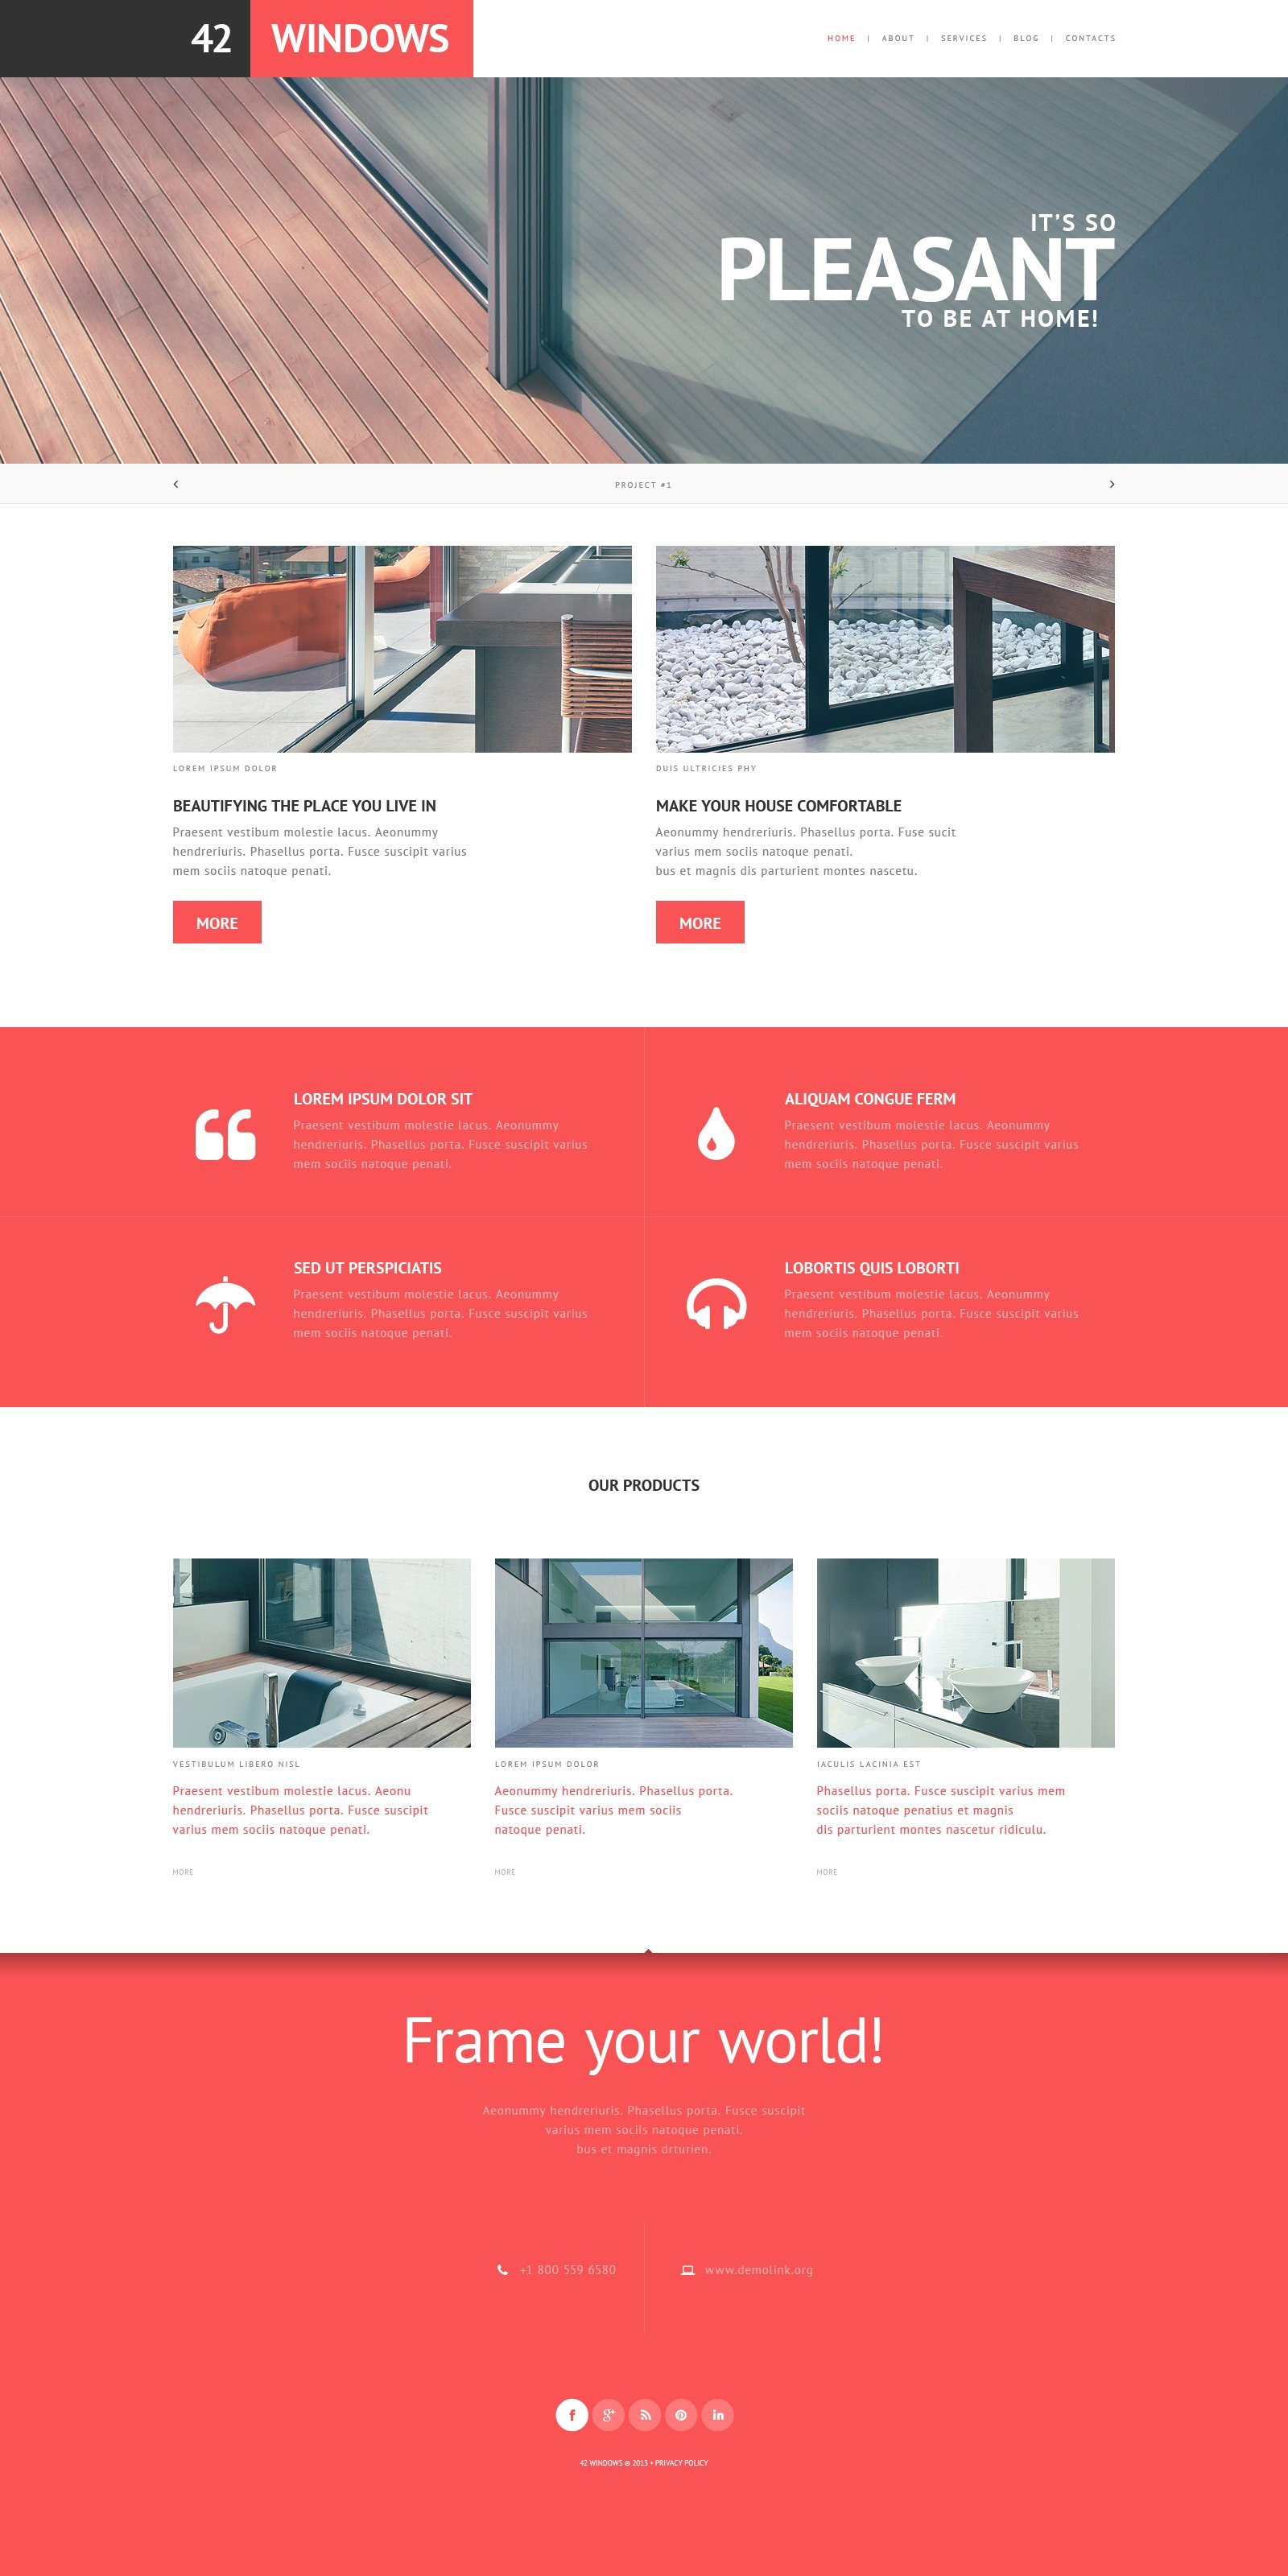 Windows doors responsive website template 45755 for Interior design responsive website templates edge free download